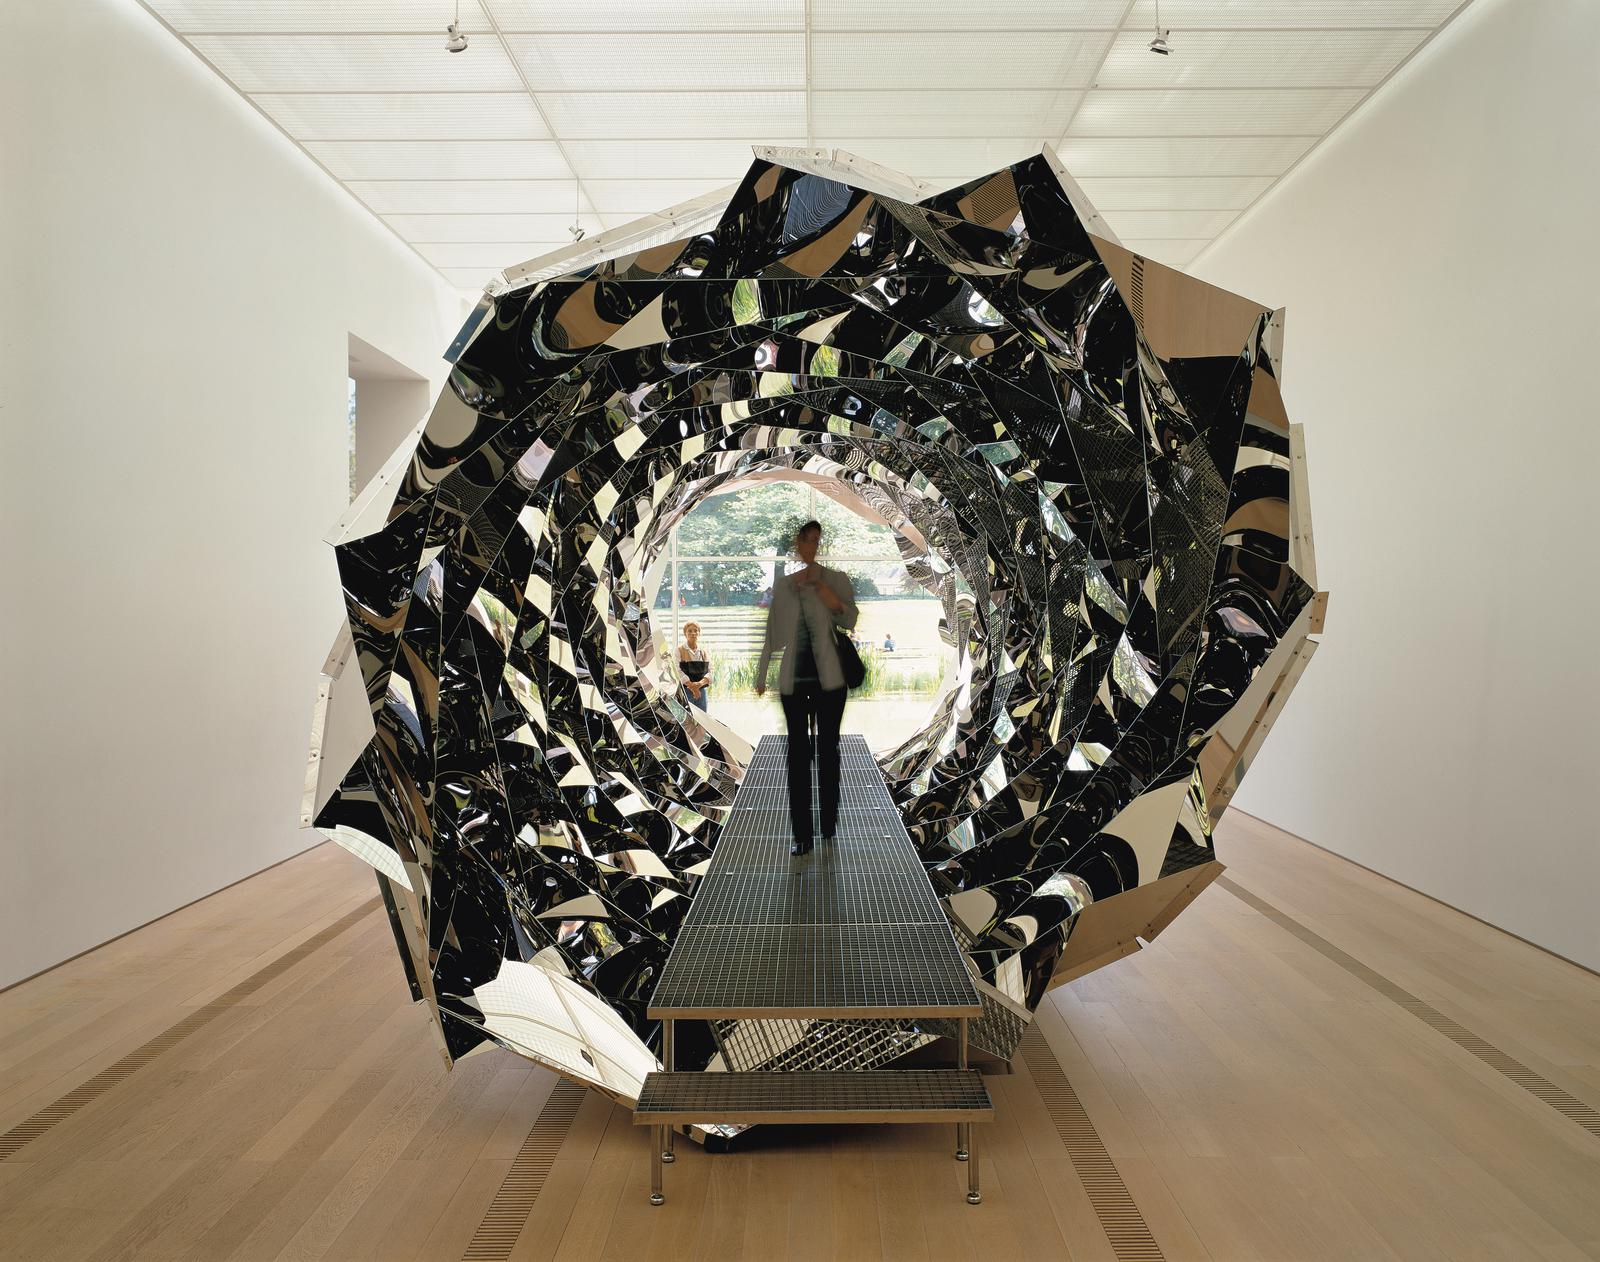 pictures for kitchen walls oak table sets your spiral view • artwork studio olafur eliasson